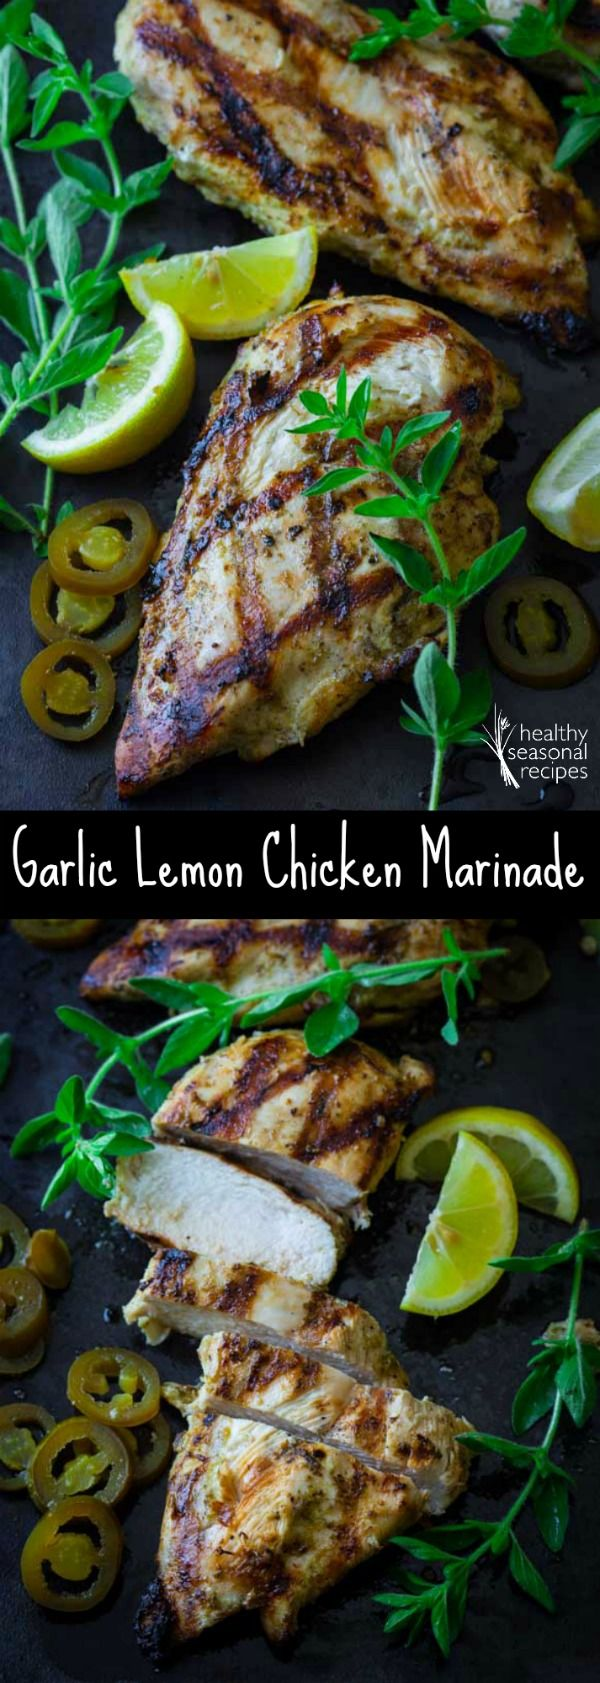 garlic lemon chicken marinade - Healthy Seasonal Recipes